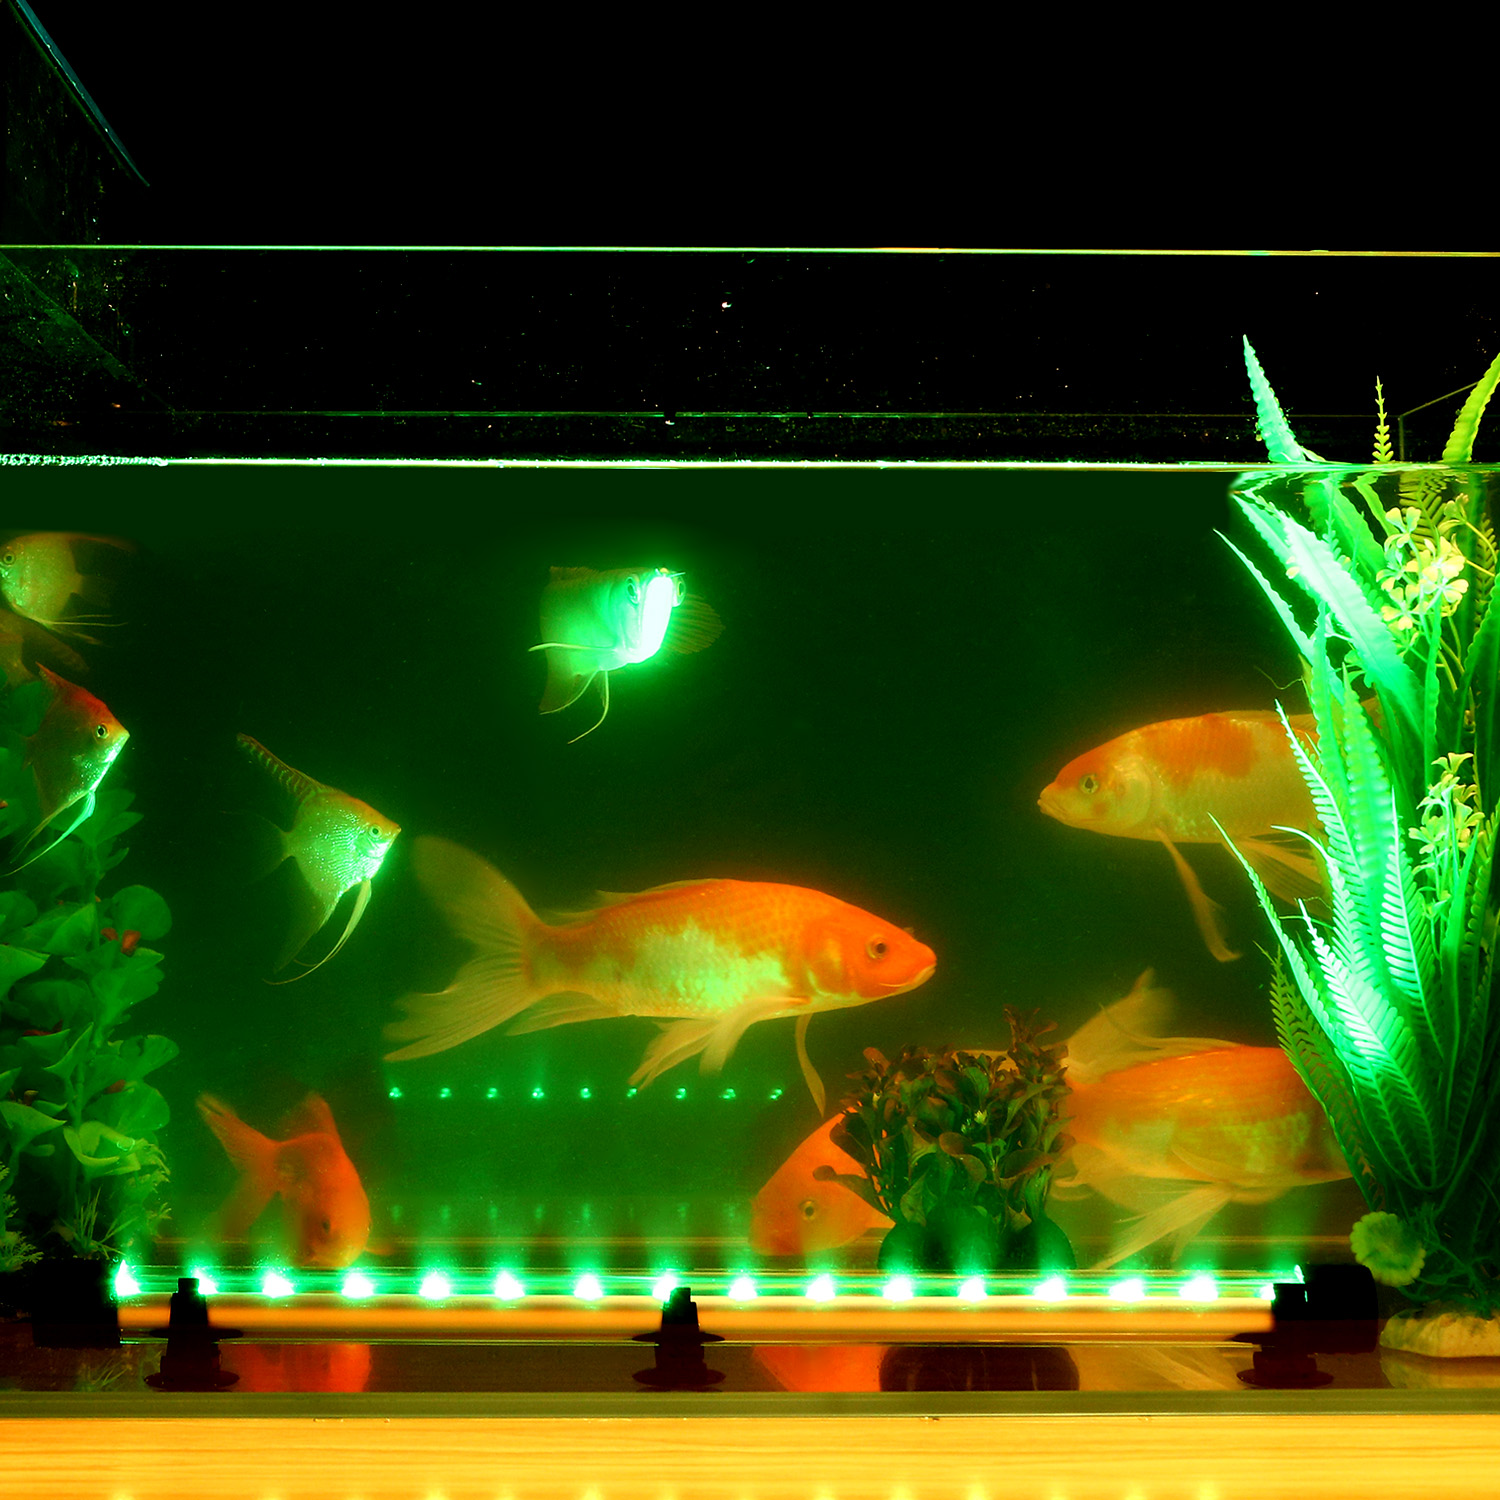 size zjl free ideas remote colorful full of quality tank fish lights light aquarium high led image for clip coral sample awful